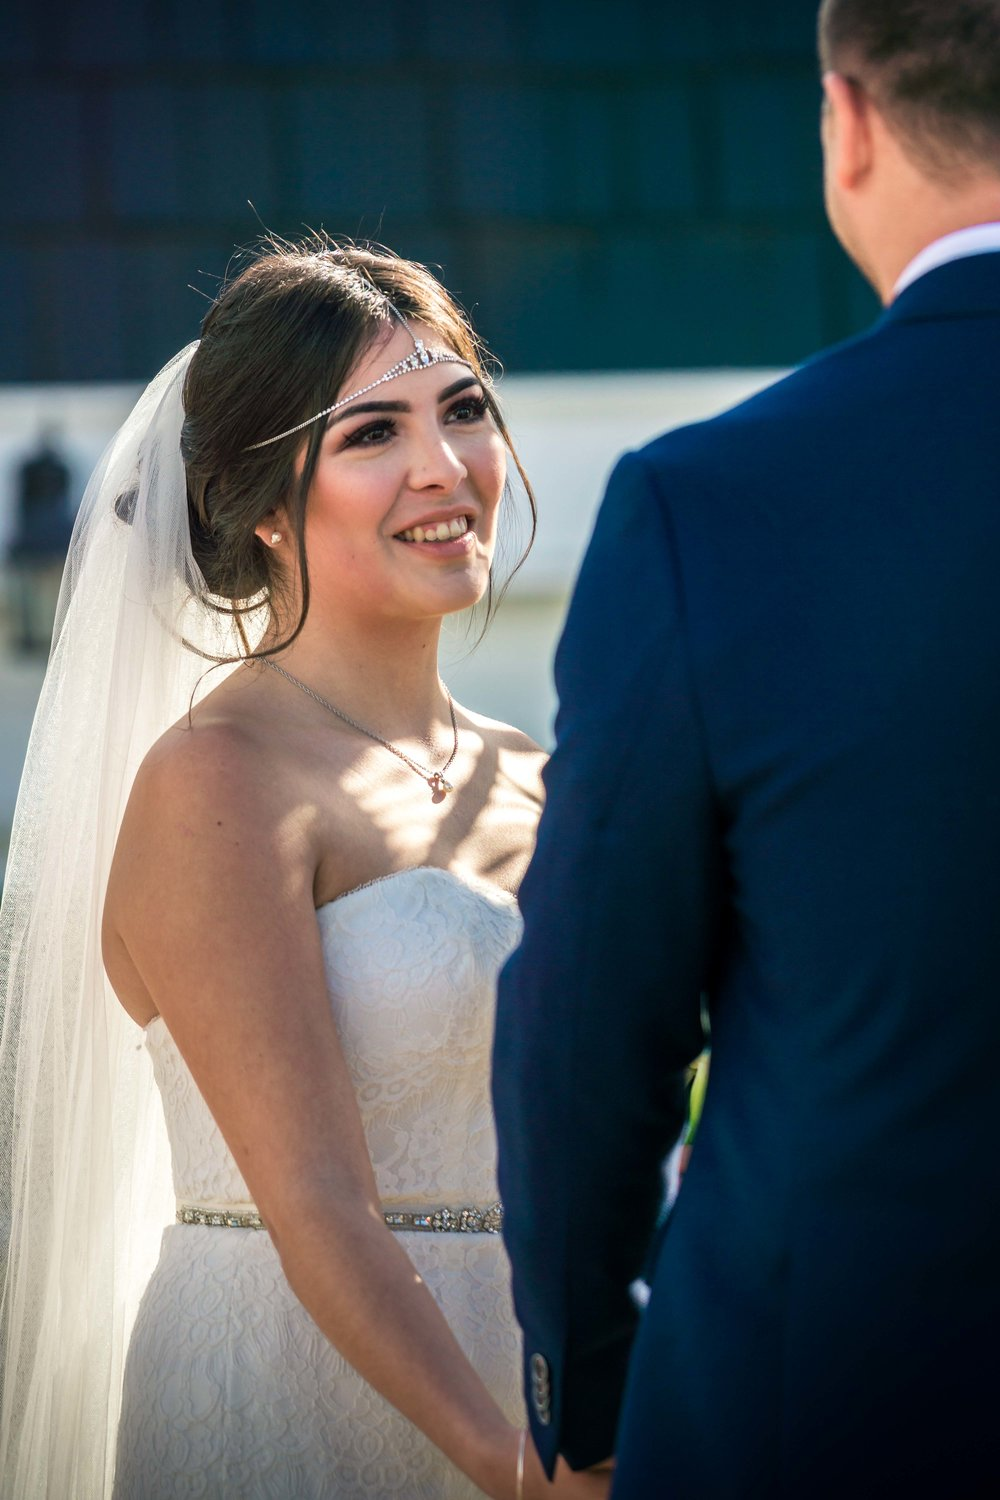 The bride and groom looking at each other in love at the altar during their wedding ceremony in Balboa Island